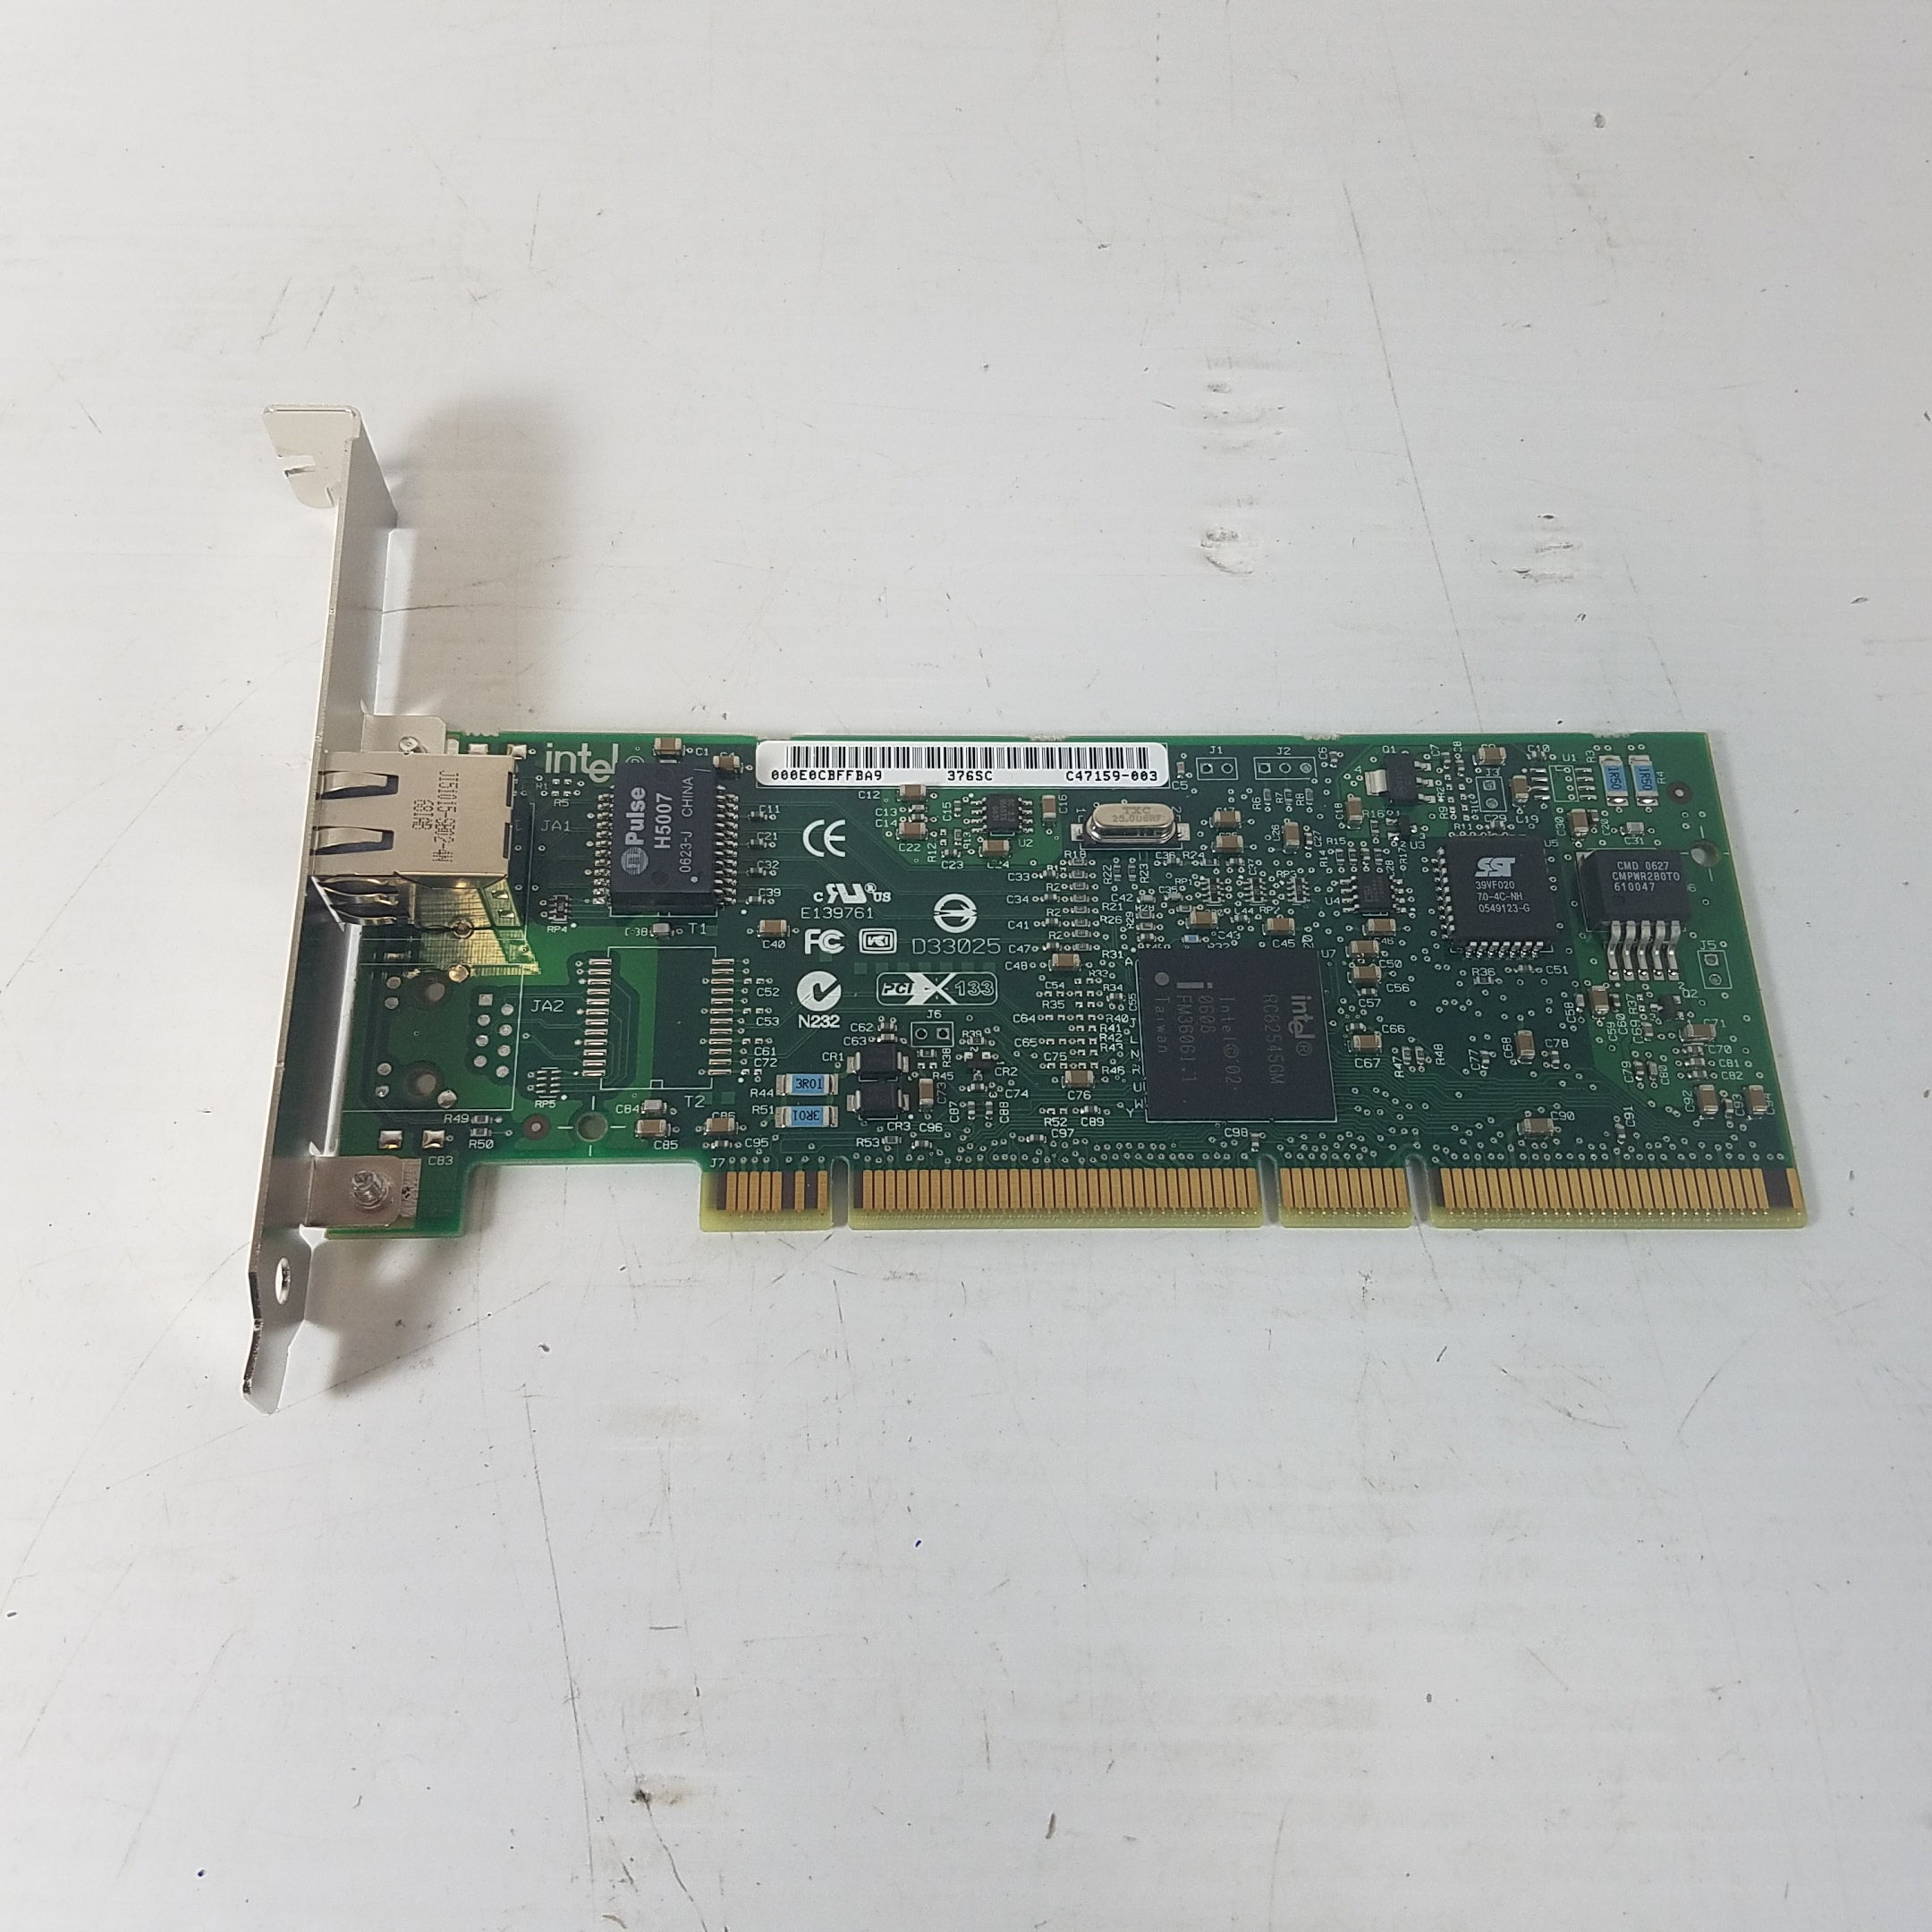 Intel PRO Gigabit LAN Card W1392 Dell 0W1392